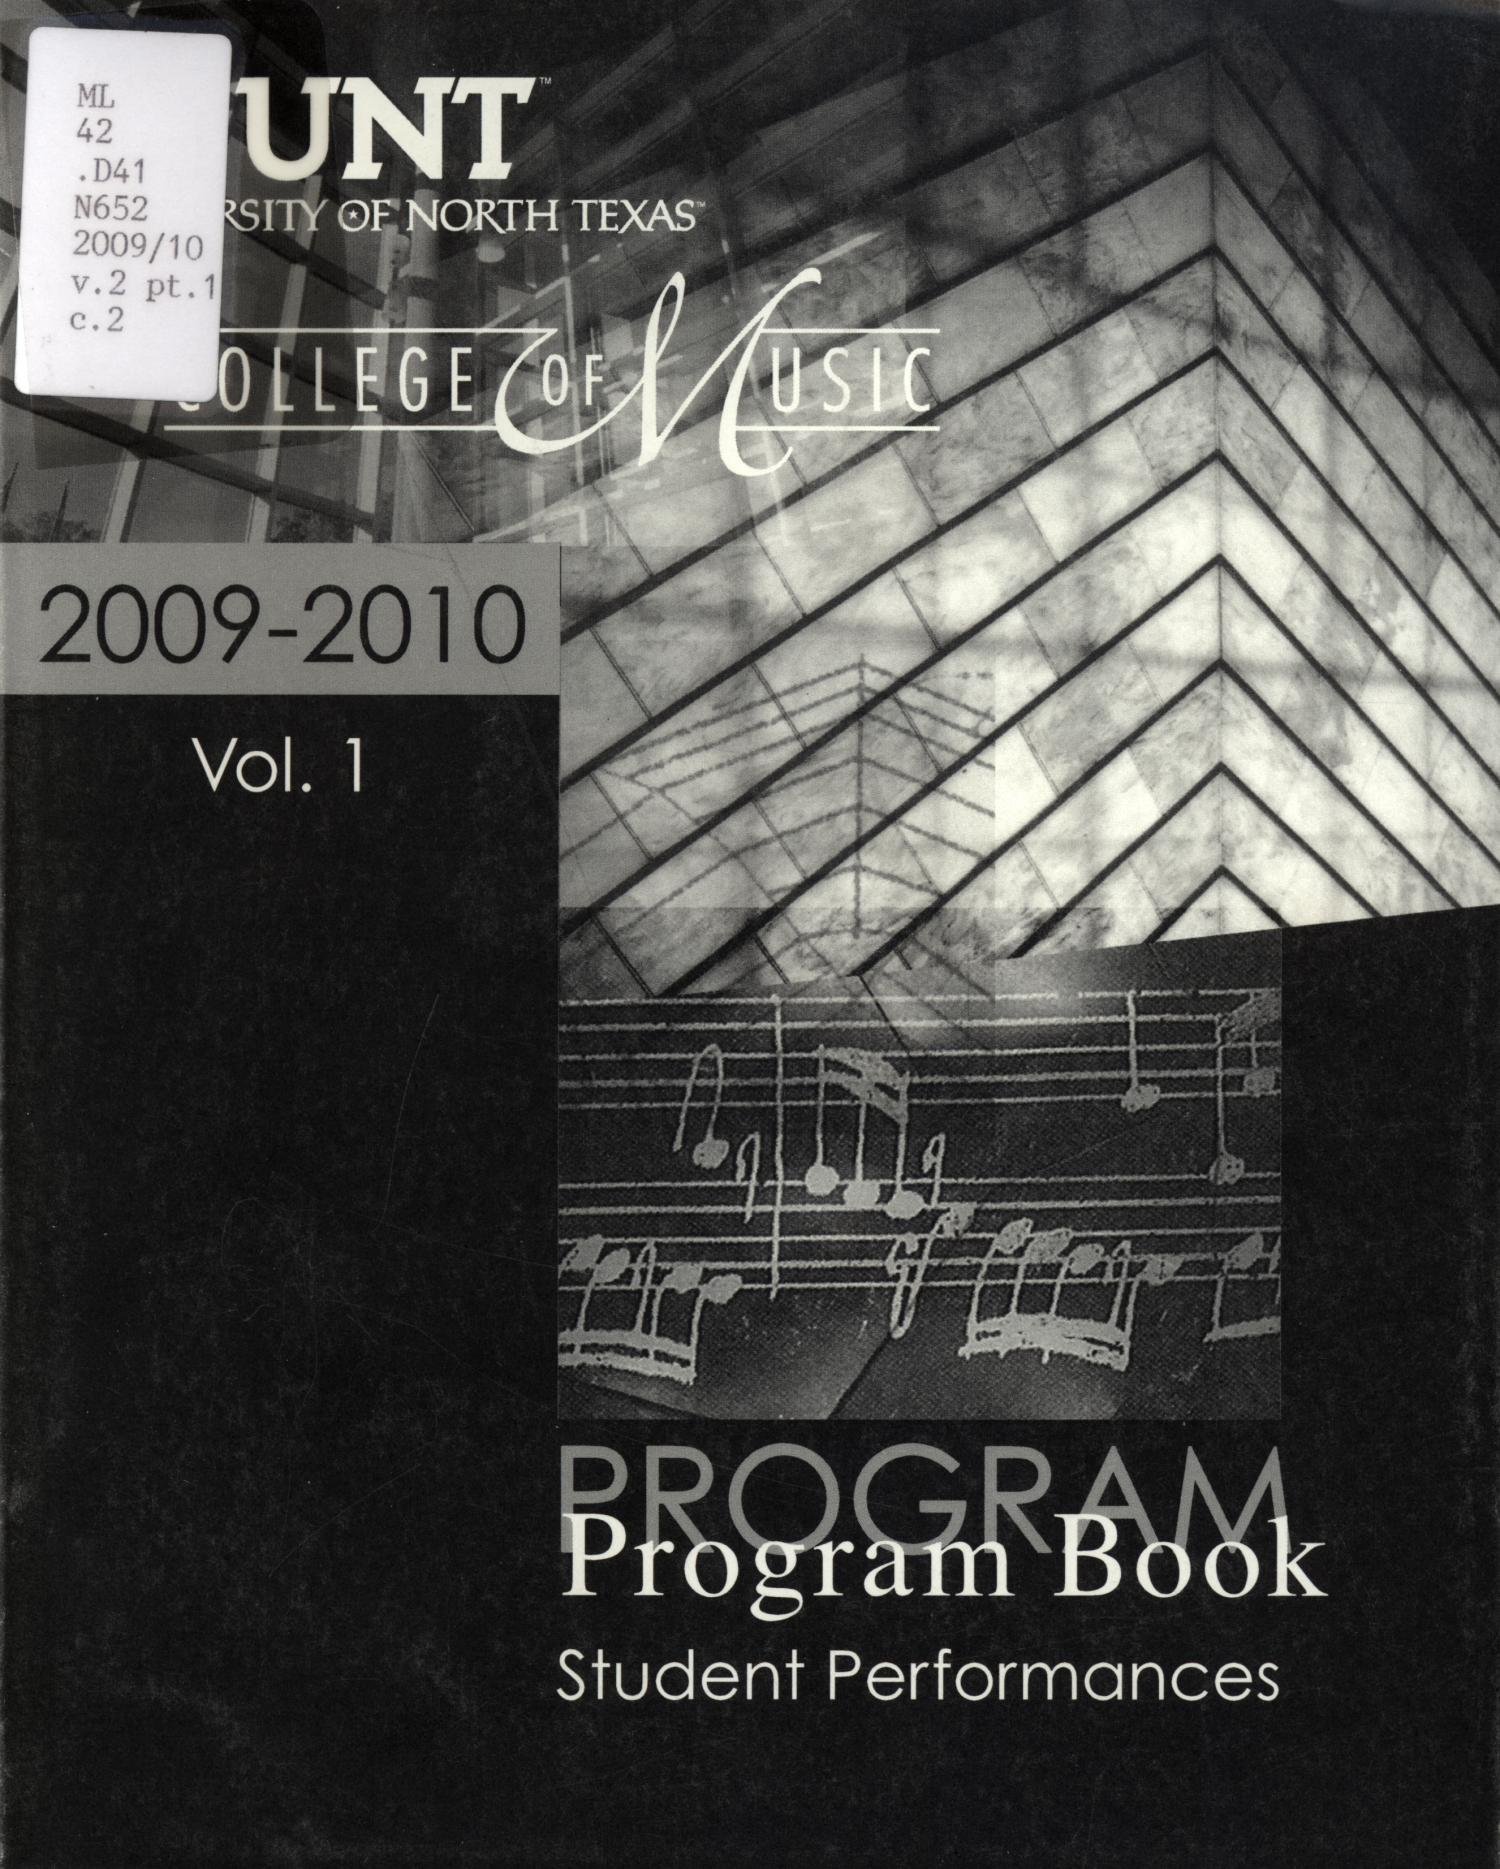 College of Music Program Book 2009-2010: Student Performances, Volume 1                                                                                                      Front Cover